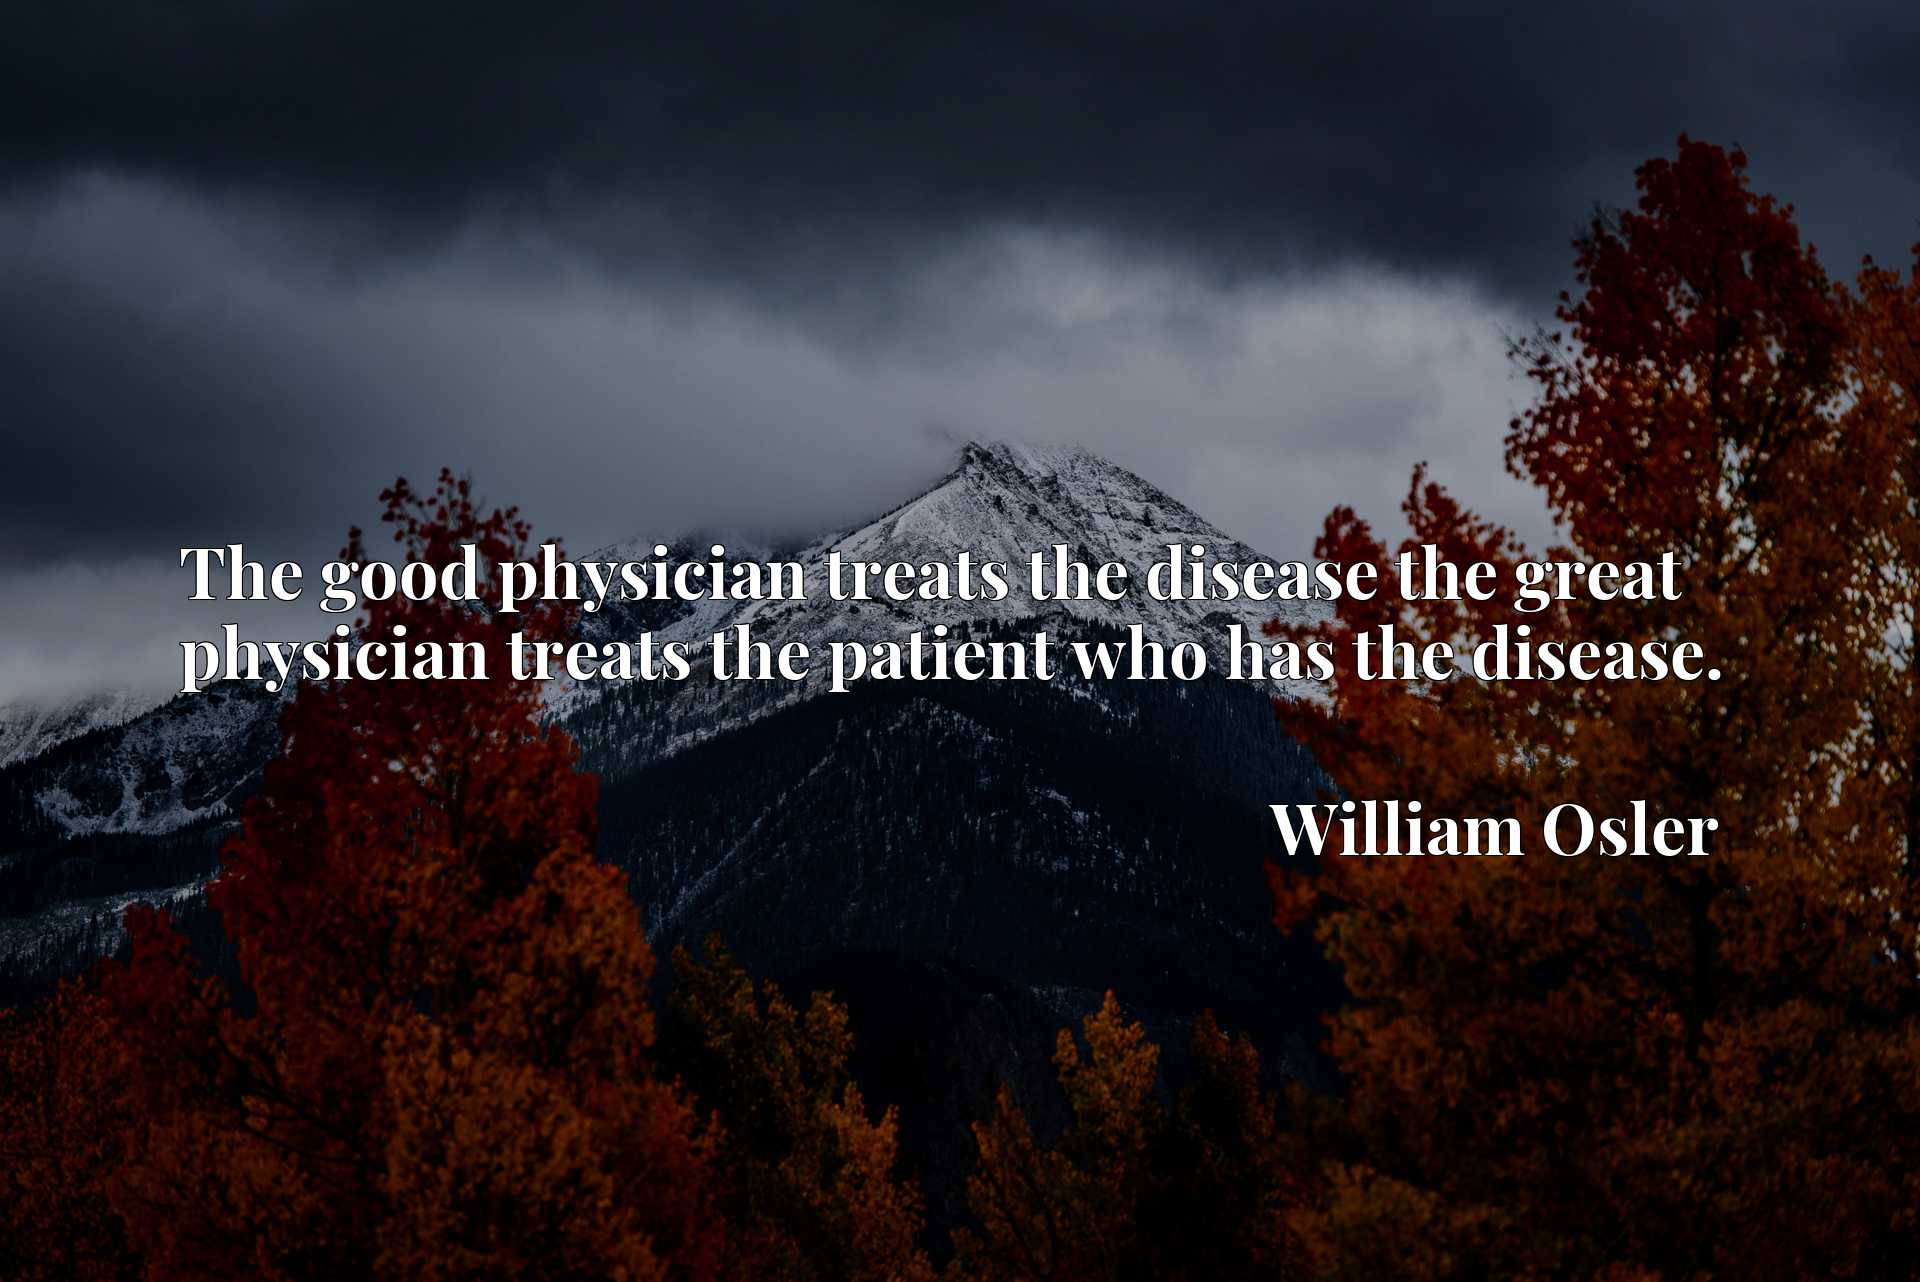 The good physician treats the disease the great physician treats the patient who has the disease.